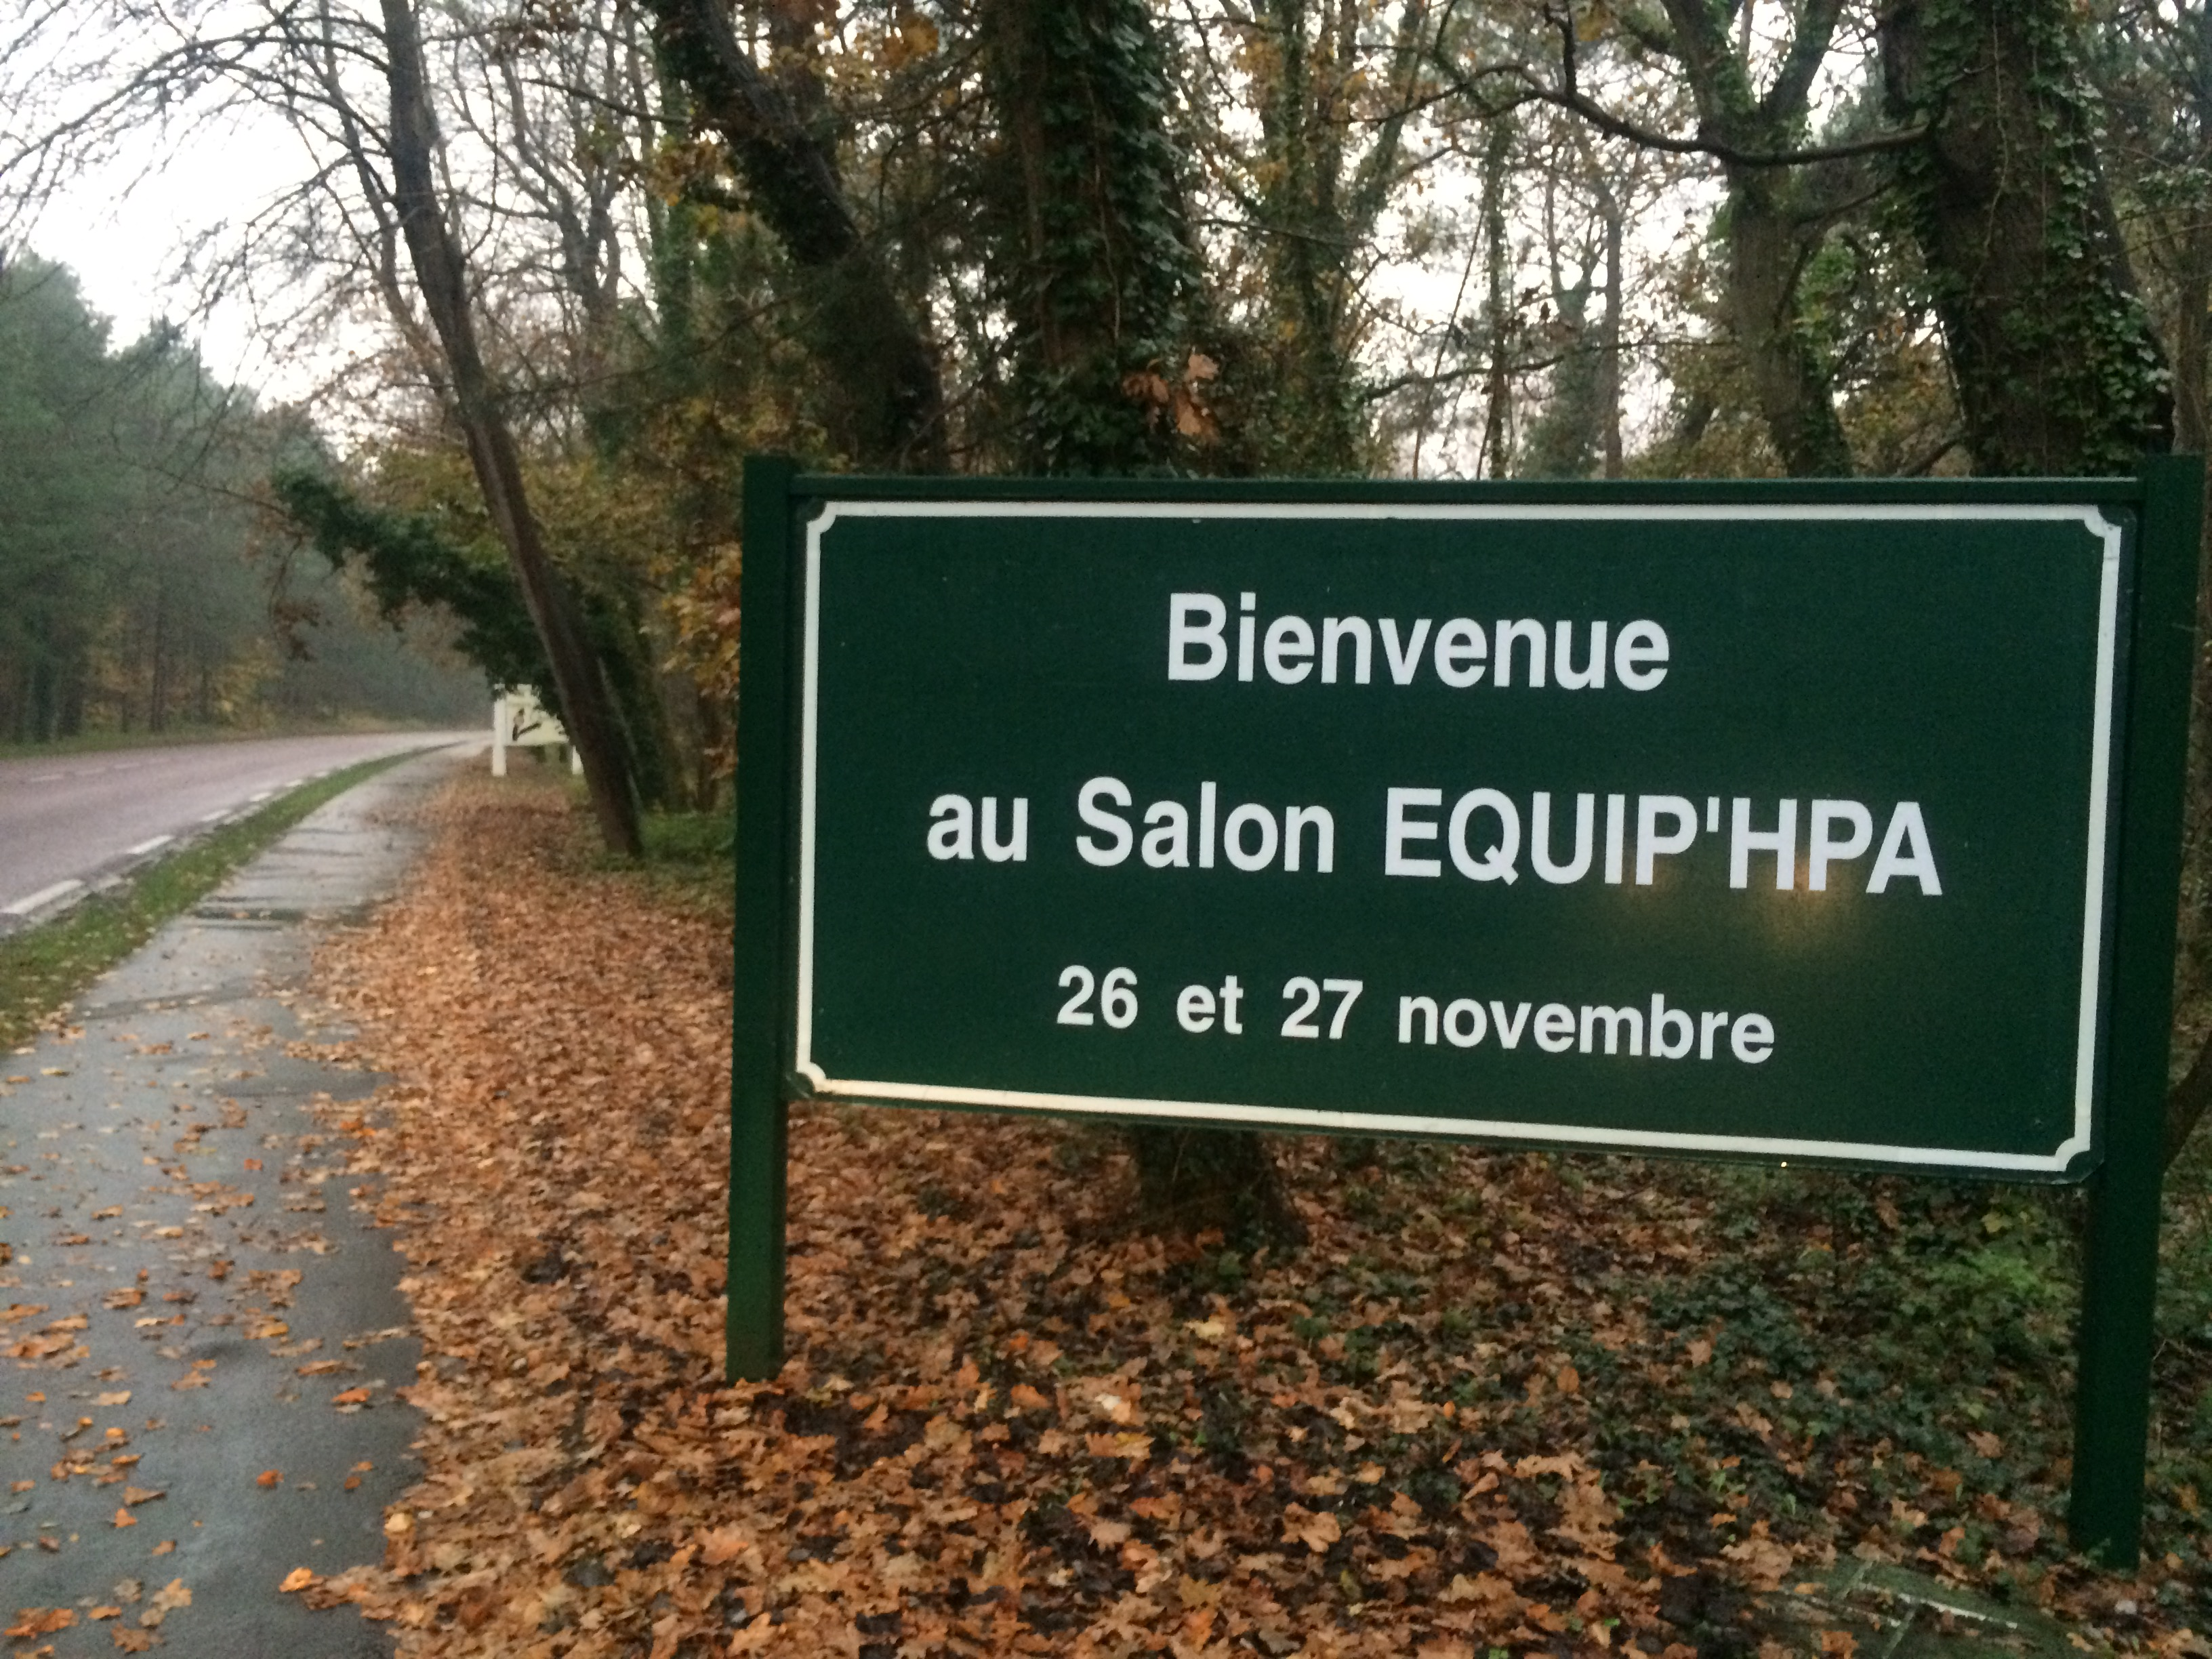 Equip hpa 2014 bienvenue au salon blog hippo camp for Salon hpa touquet